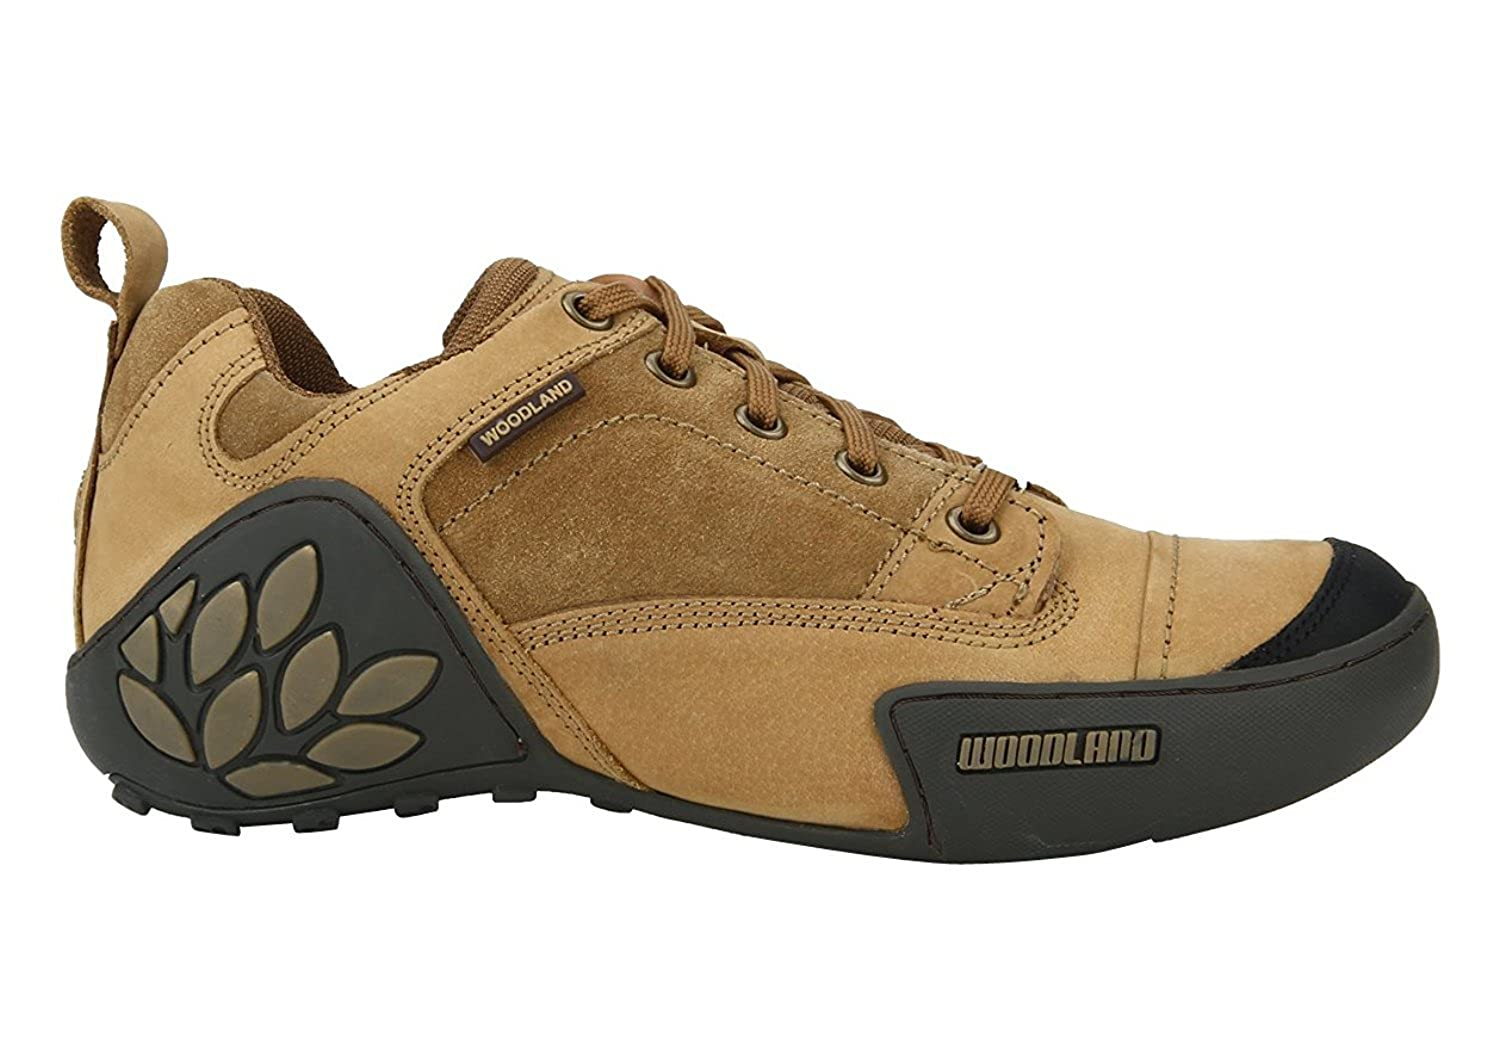 Woodland Brand shoes for men